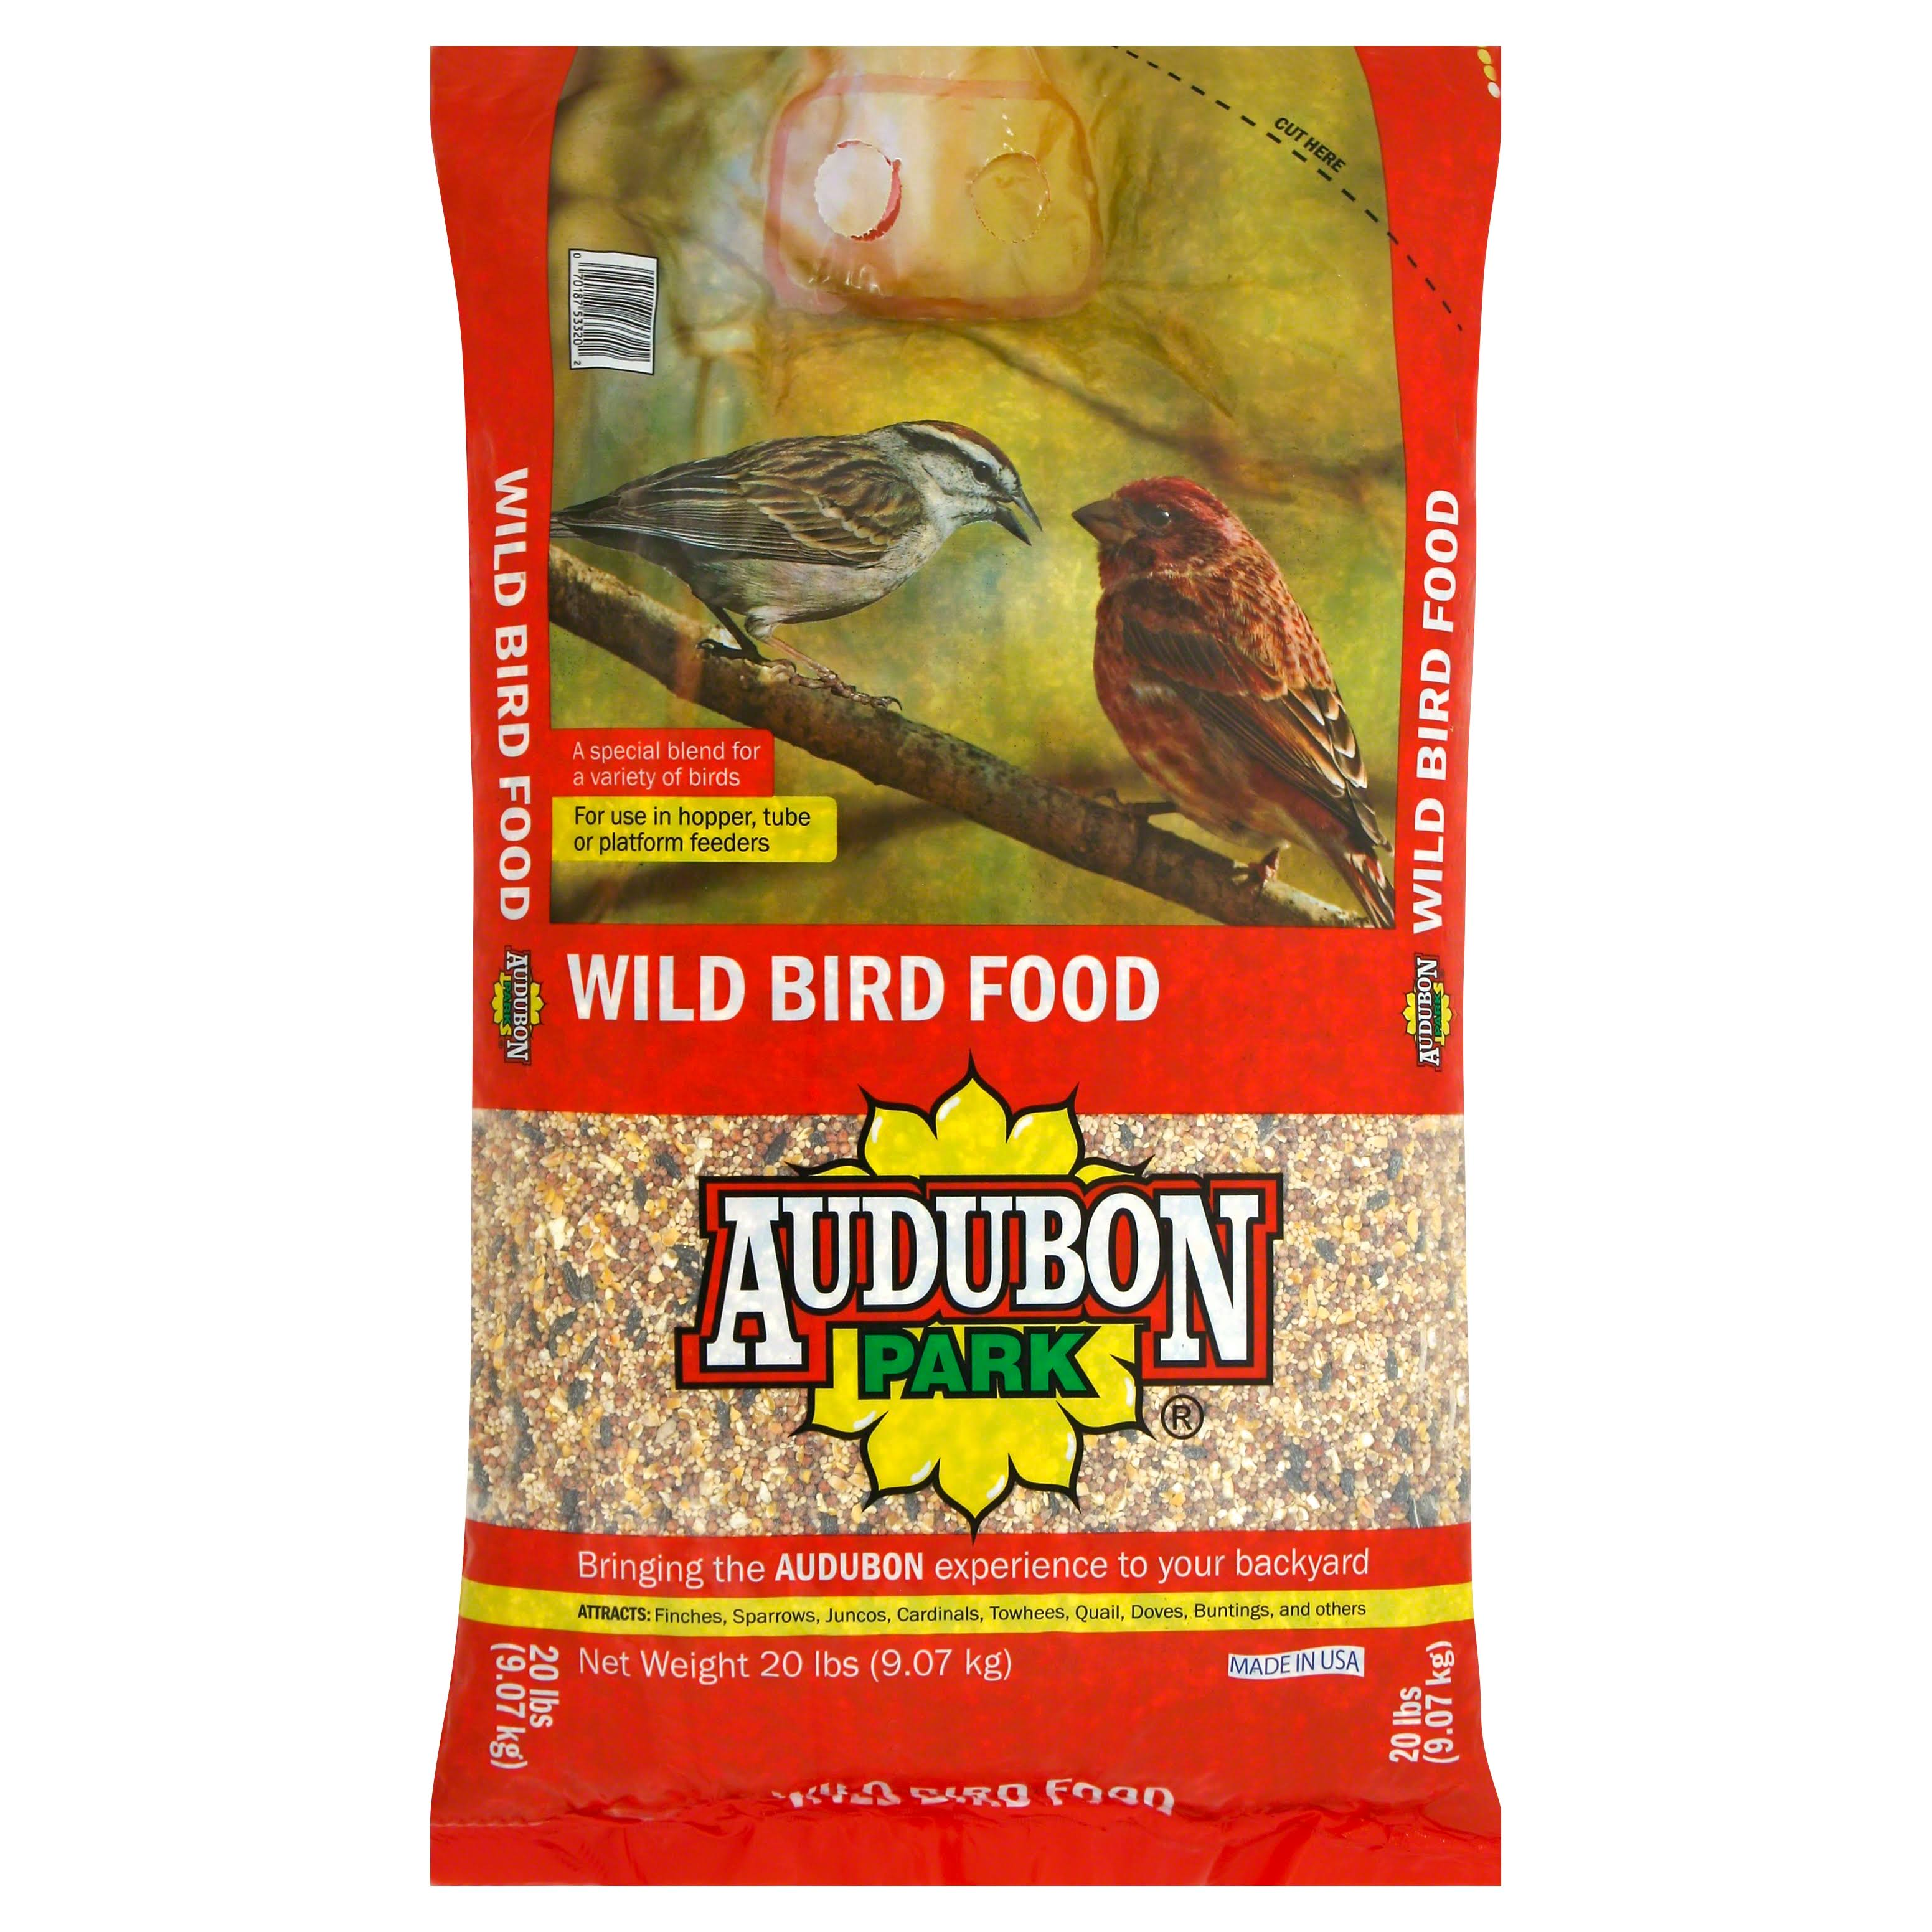 Audubon Park Wild Bird Food - 20lbs